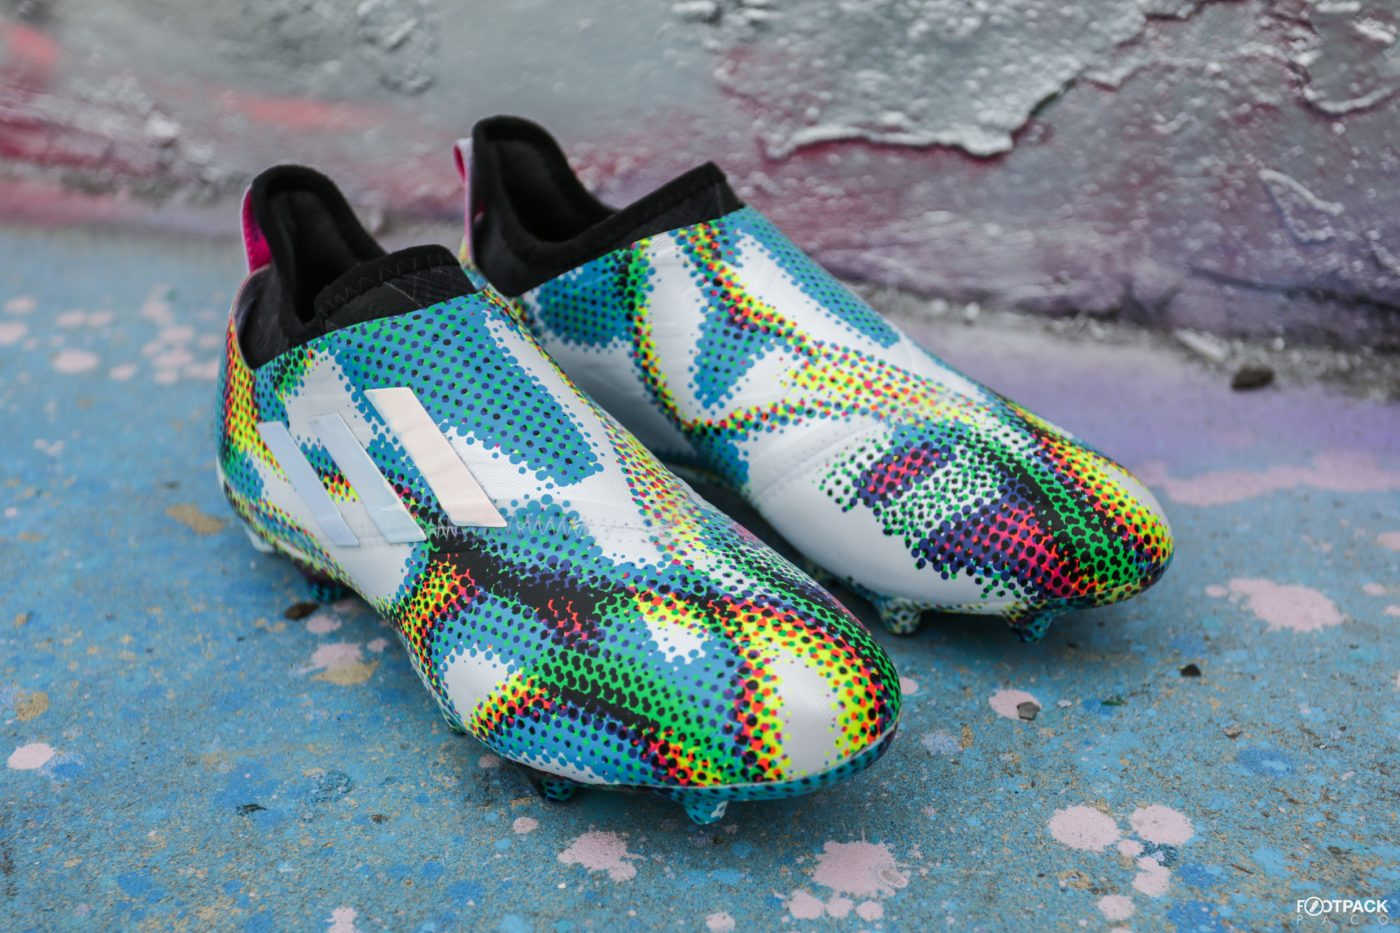 d645ddf6caee Adidas today released a unique Adidas Glitch football boot. Part of the  Adidas Virtuso pack, the latest Adidas Glitch soccer cleat skin is dubbed  ...